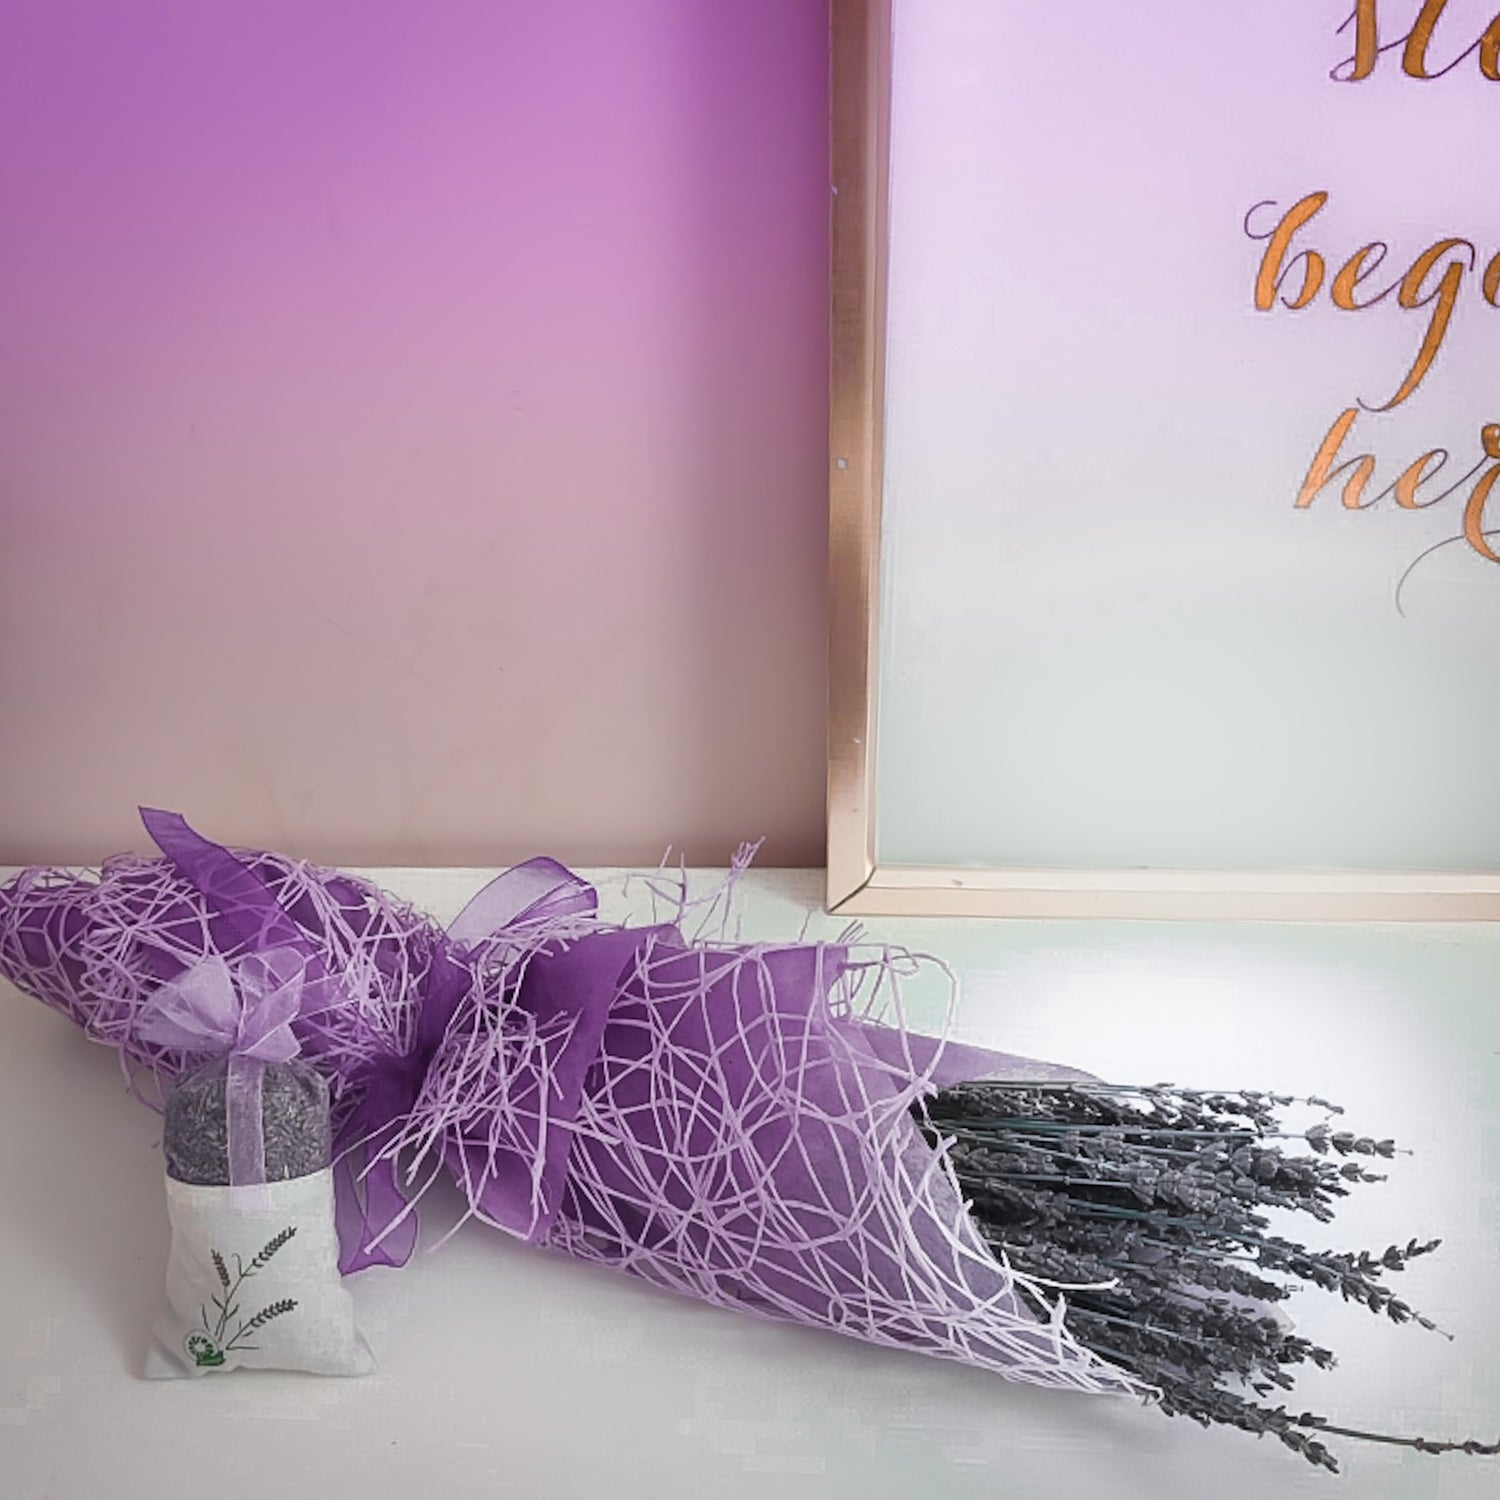 Dry lavender bunch with dry lavendar sachet wrapped in a purple paper covered in textured fabric